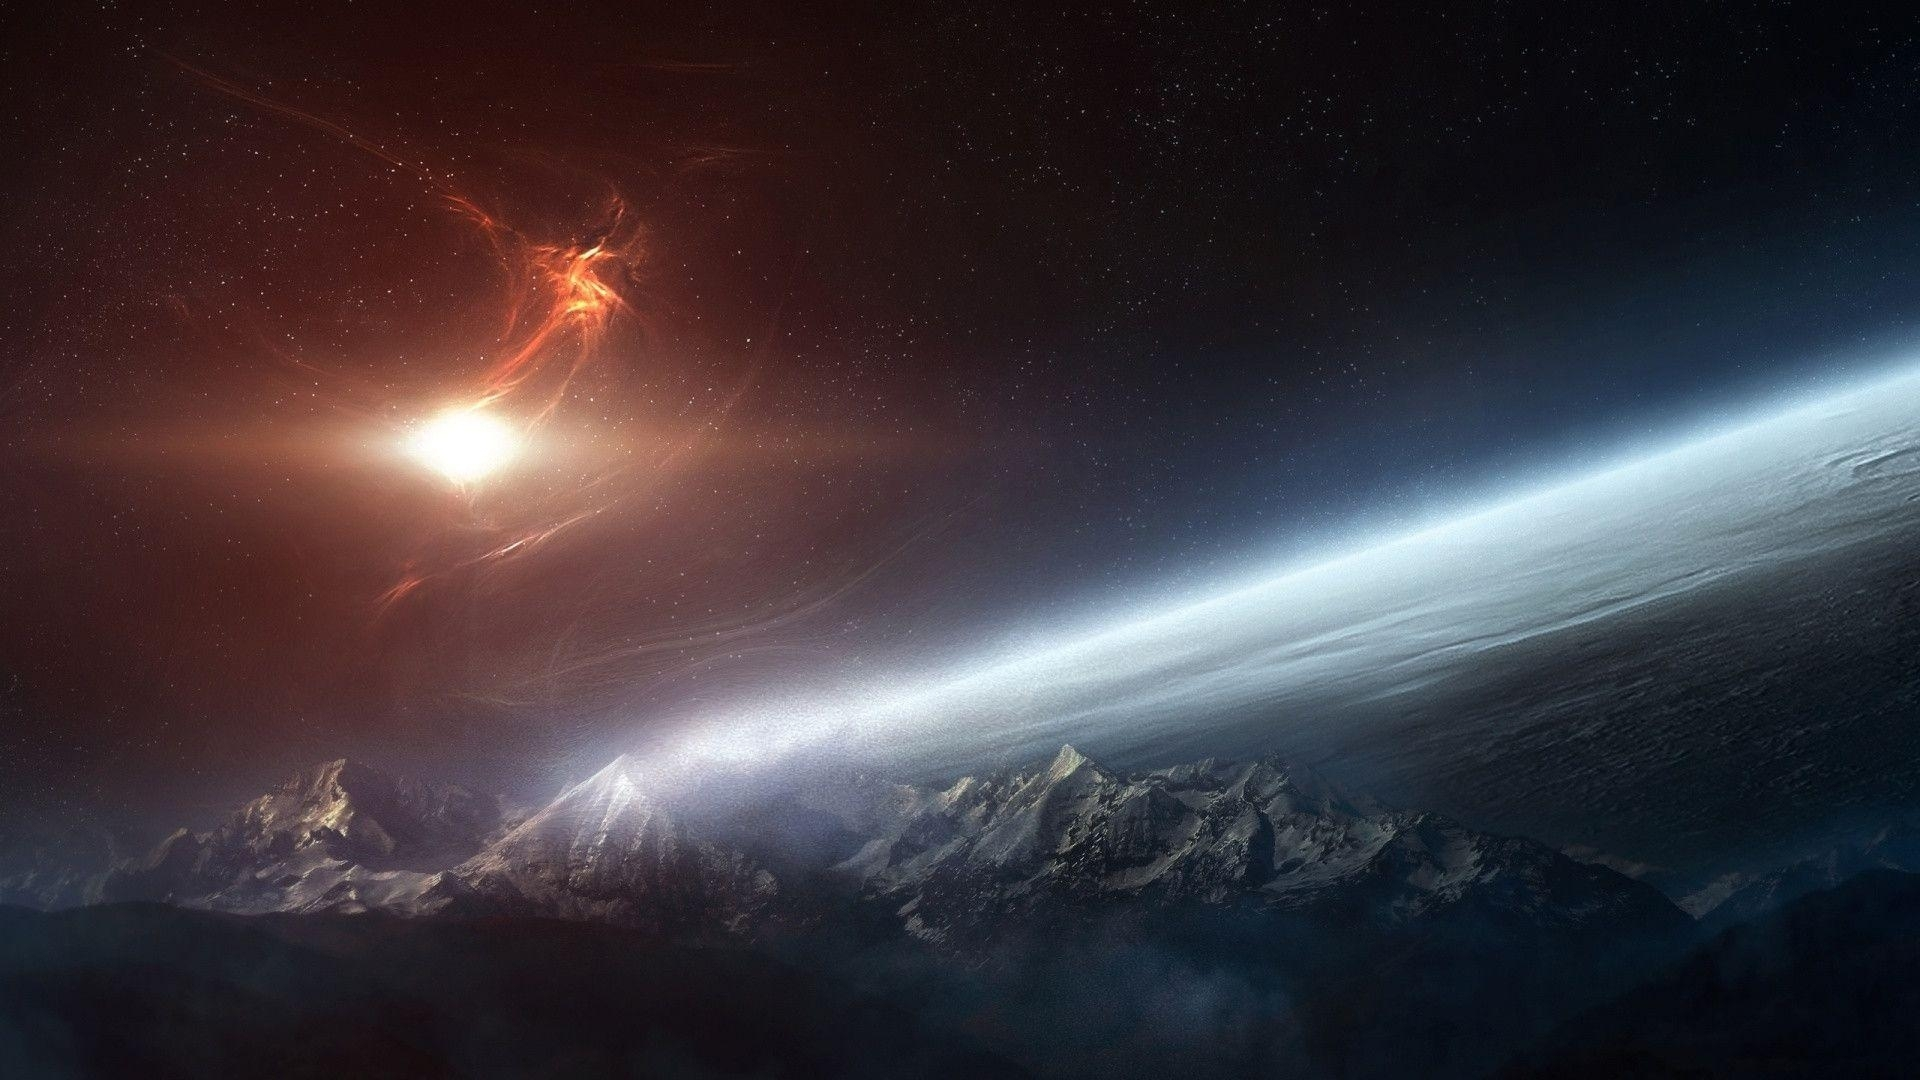 space desktop backgrounds 1920x1080 - wallpaper cave